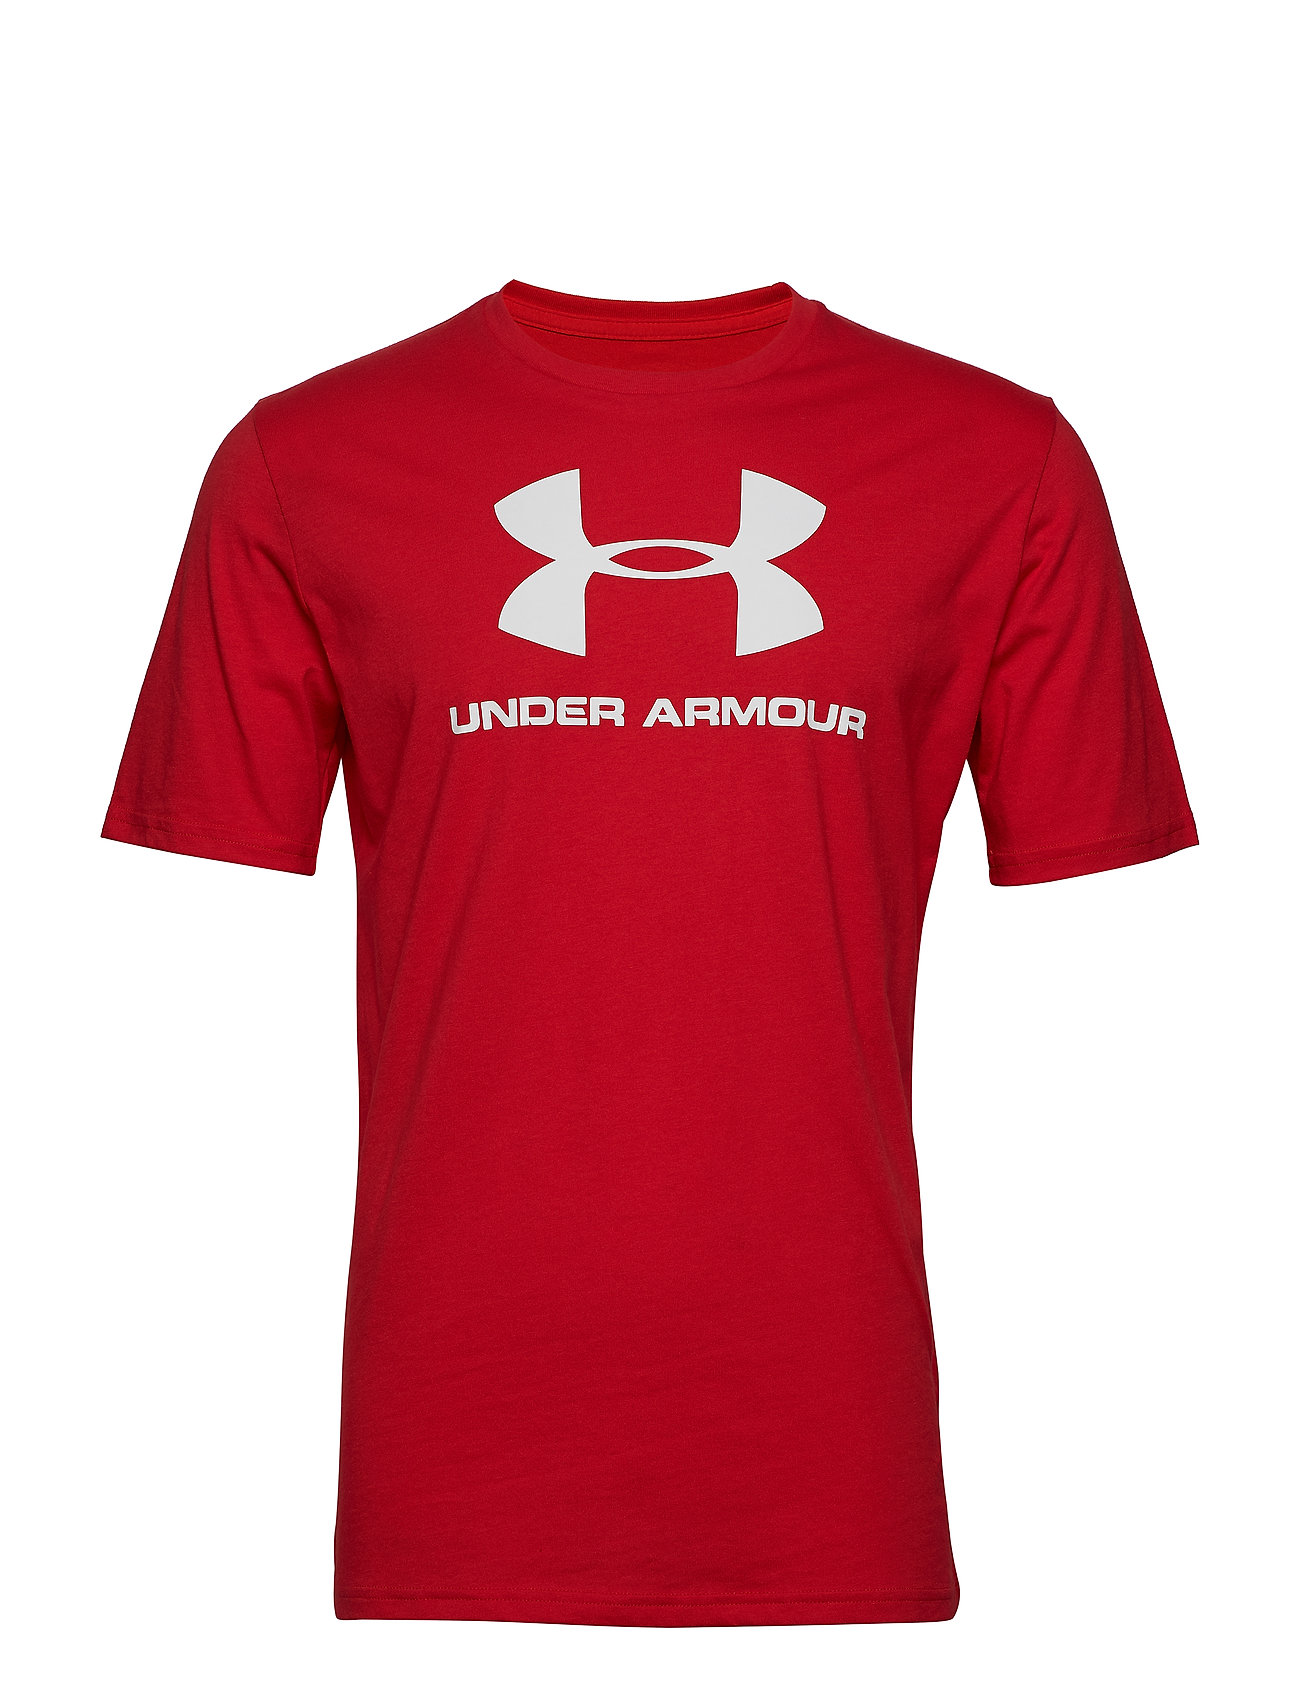 Under Armour SPORTSTYLE LOGO SS - RED